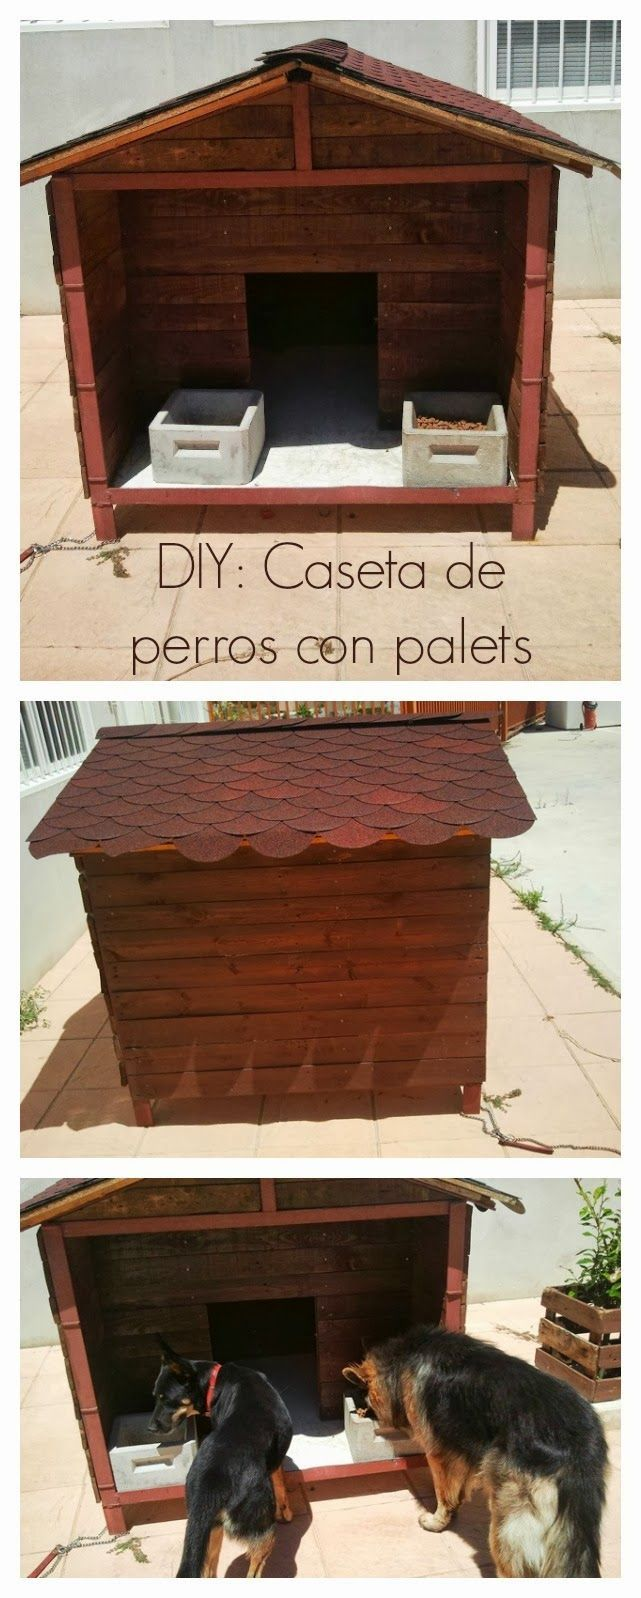 73 best images about casa perros on pinterest dog dishes - Como construir una casa ...